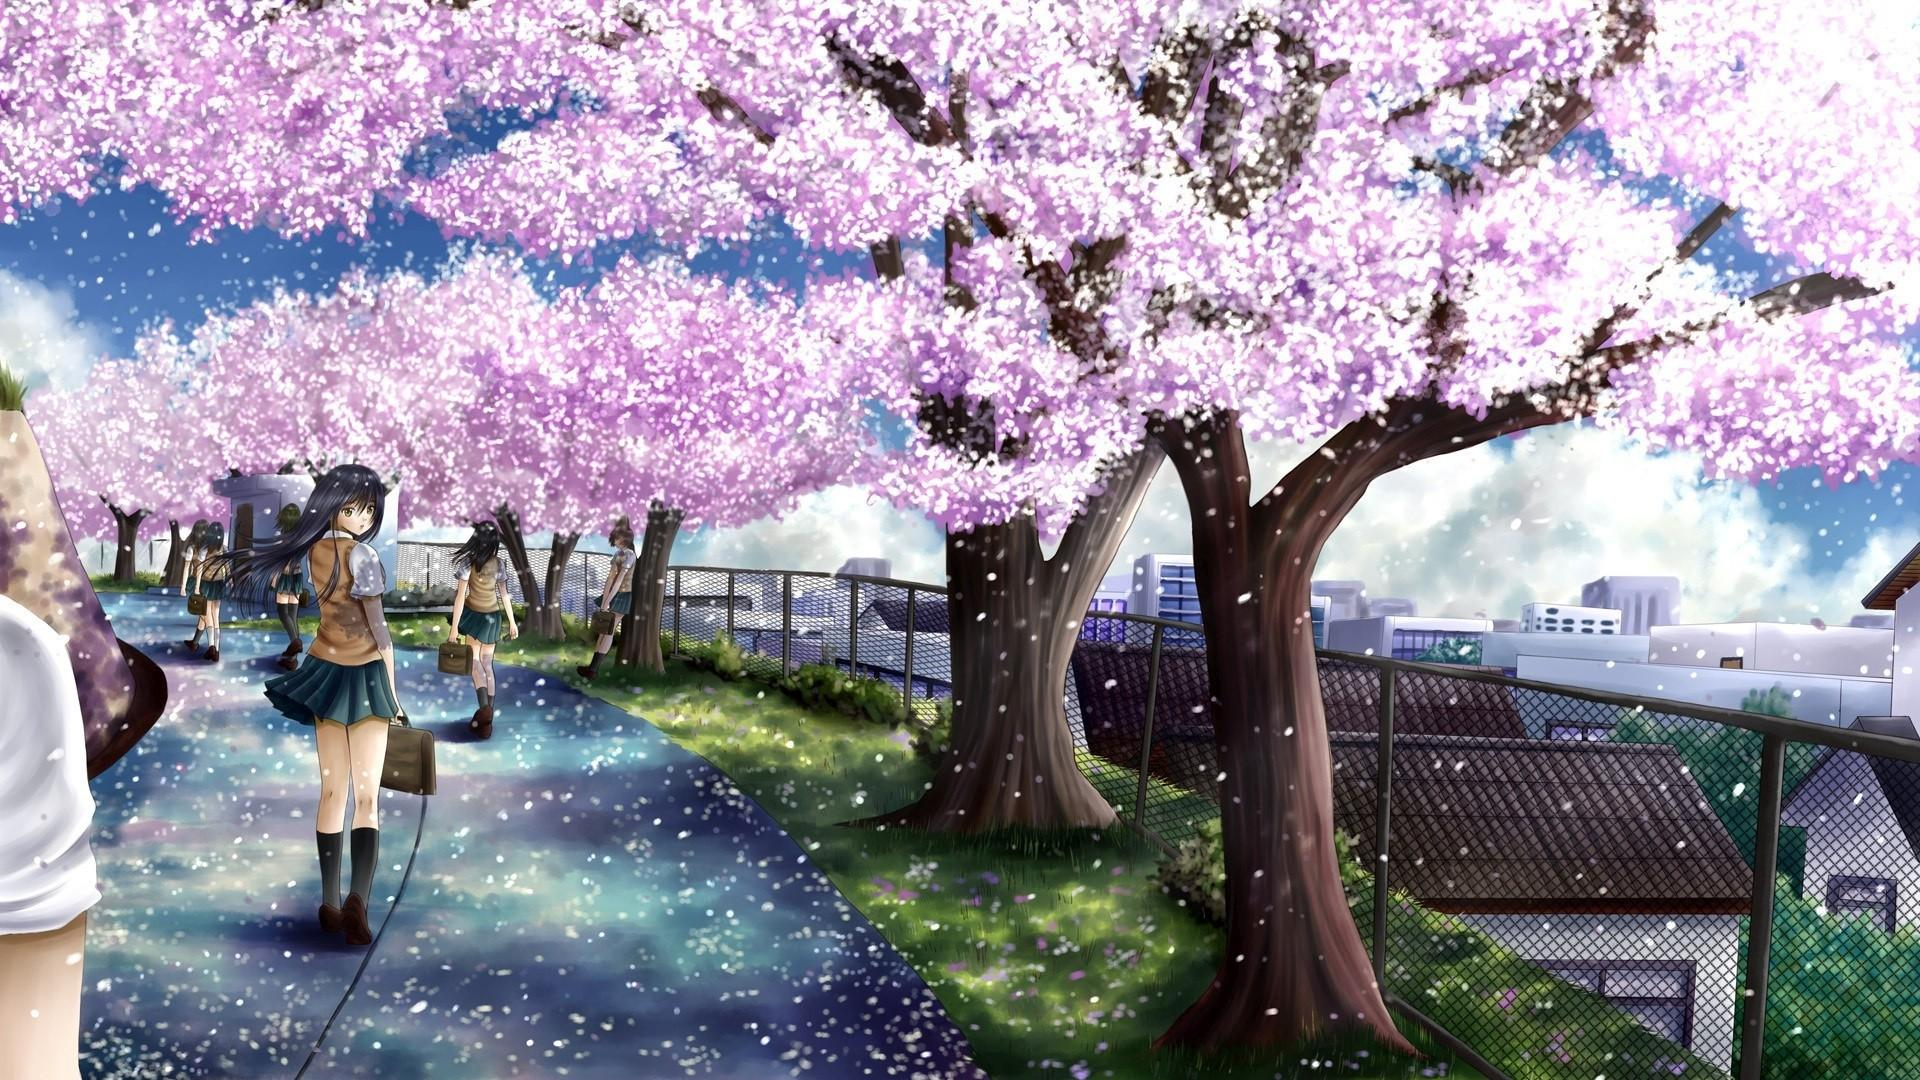 Anime Sakura Trees Hd Wallpapers Wallpaper Cave